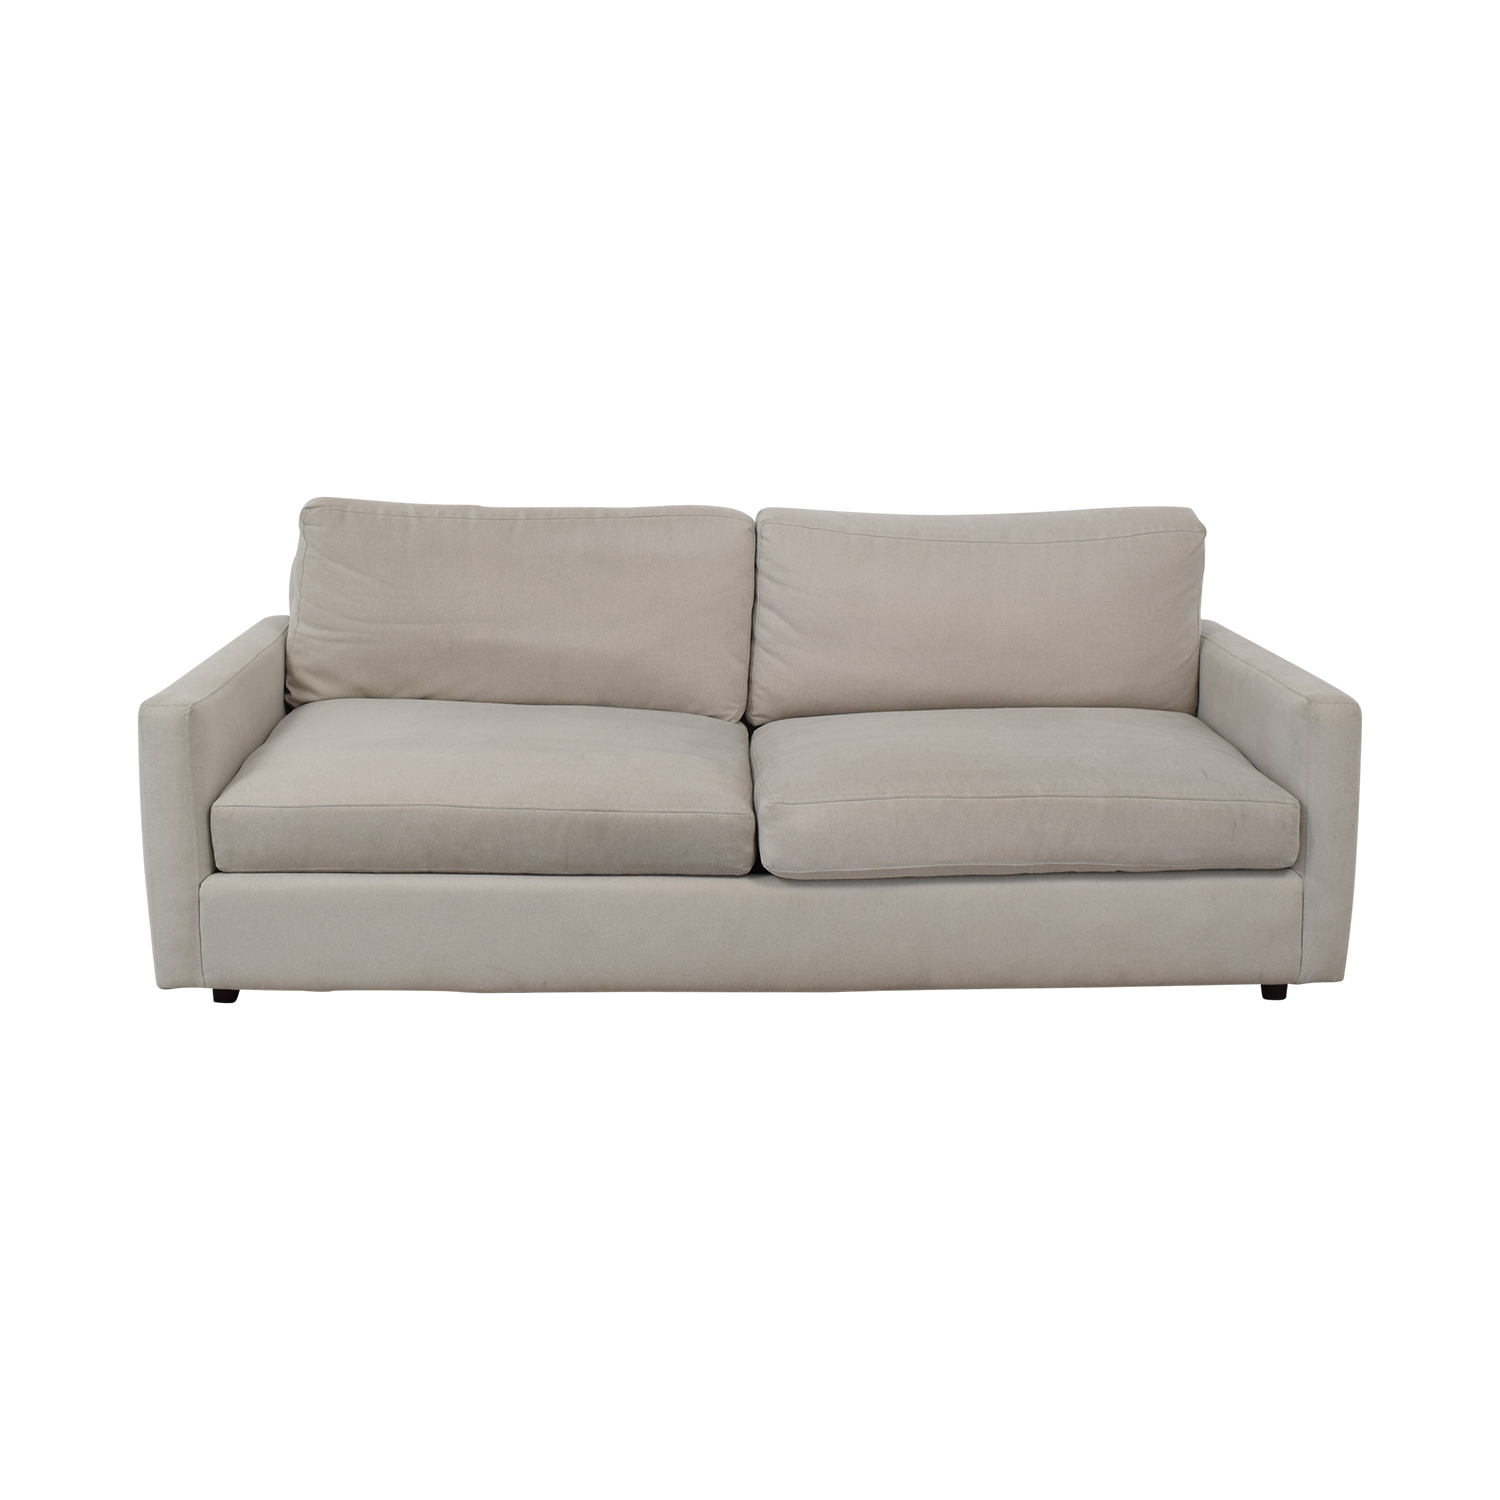 Room & Board Easton Sofa / Classic Sofas